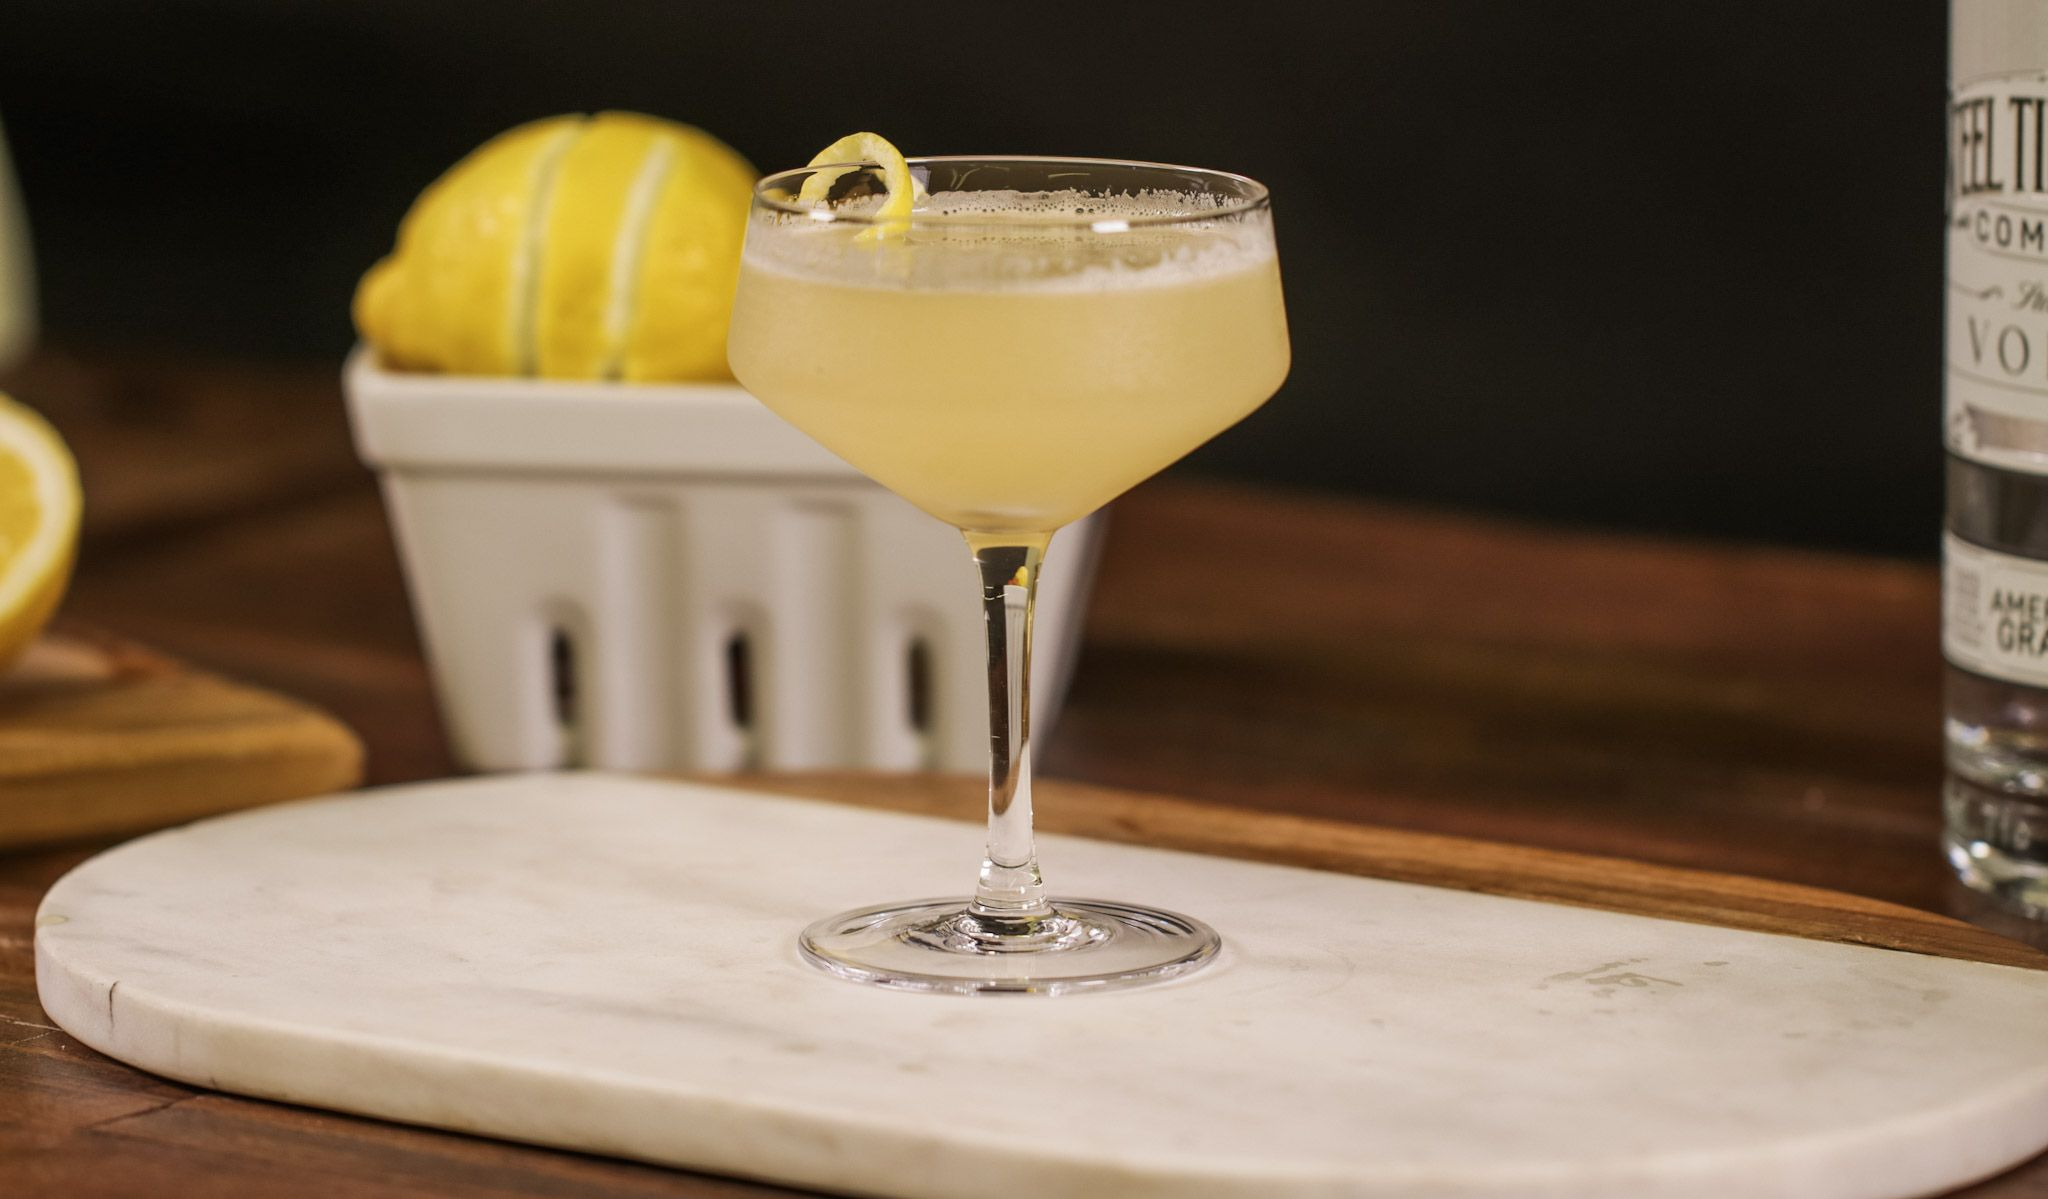 Coupe glass sitting on marble cutting board filled with vodka and lemon juice with a basket of lemons in the background